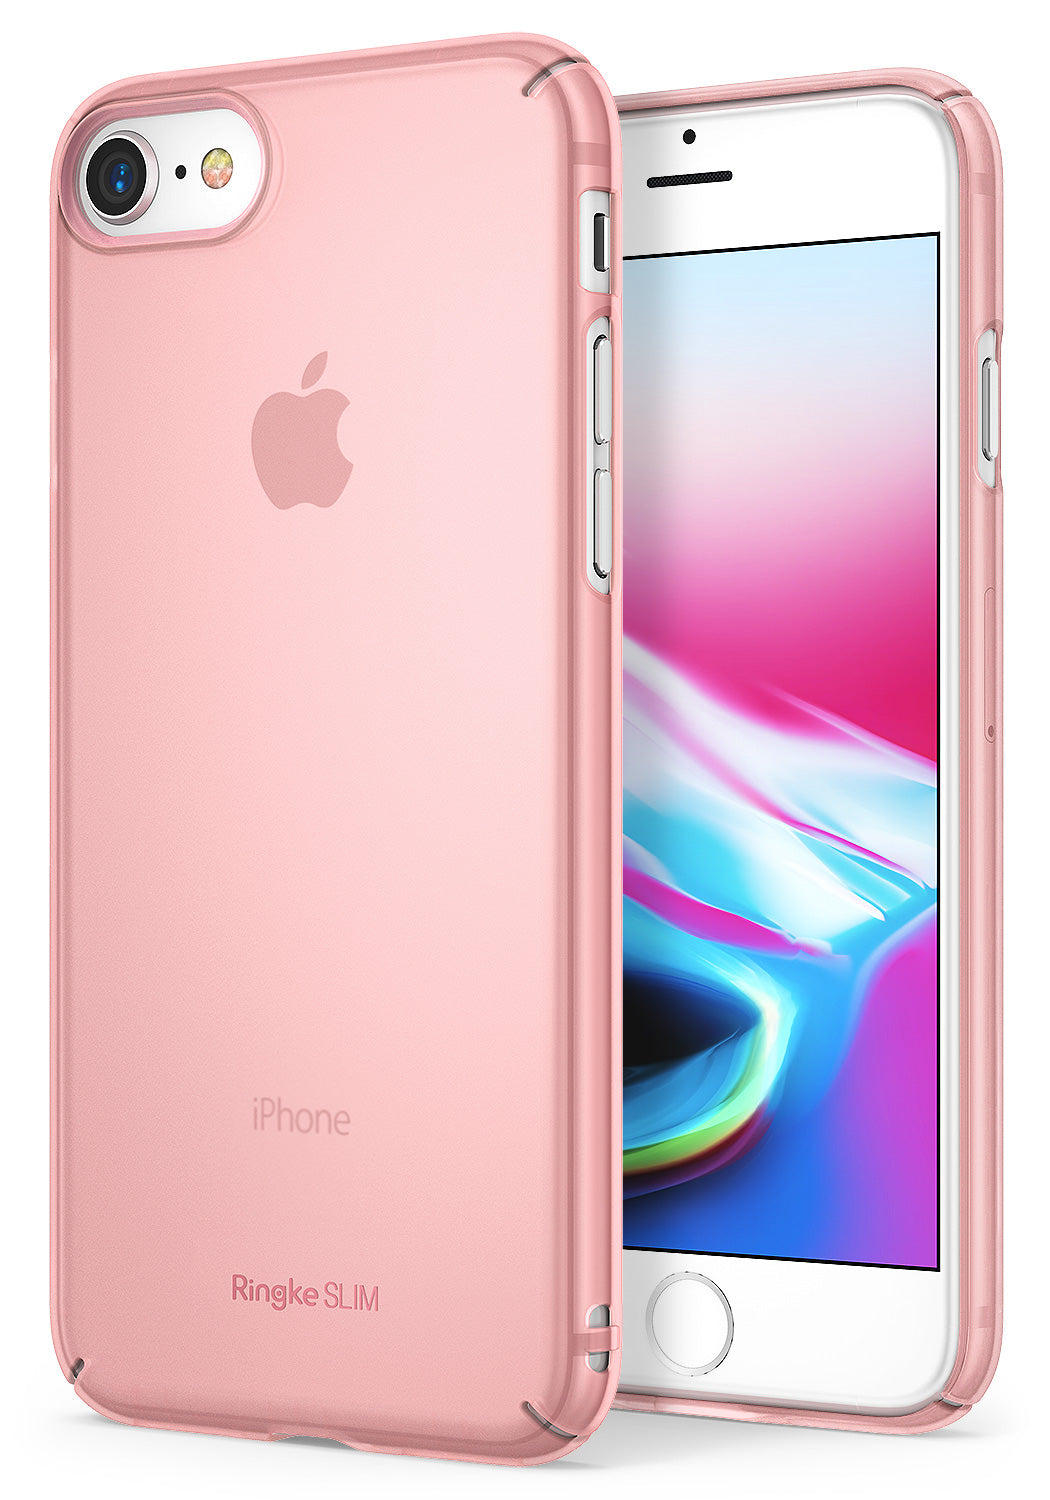 ringke slim hard pc thin protective case cover for iphone 7 8 main frost pink